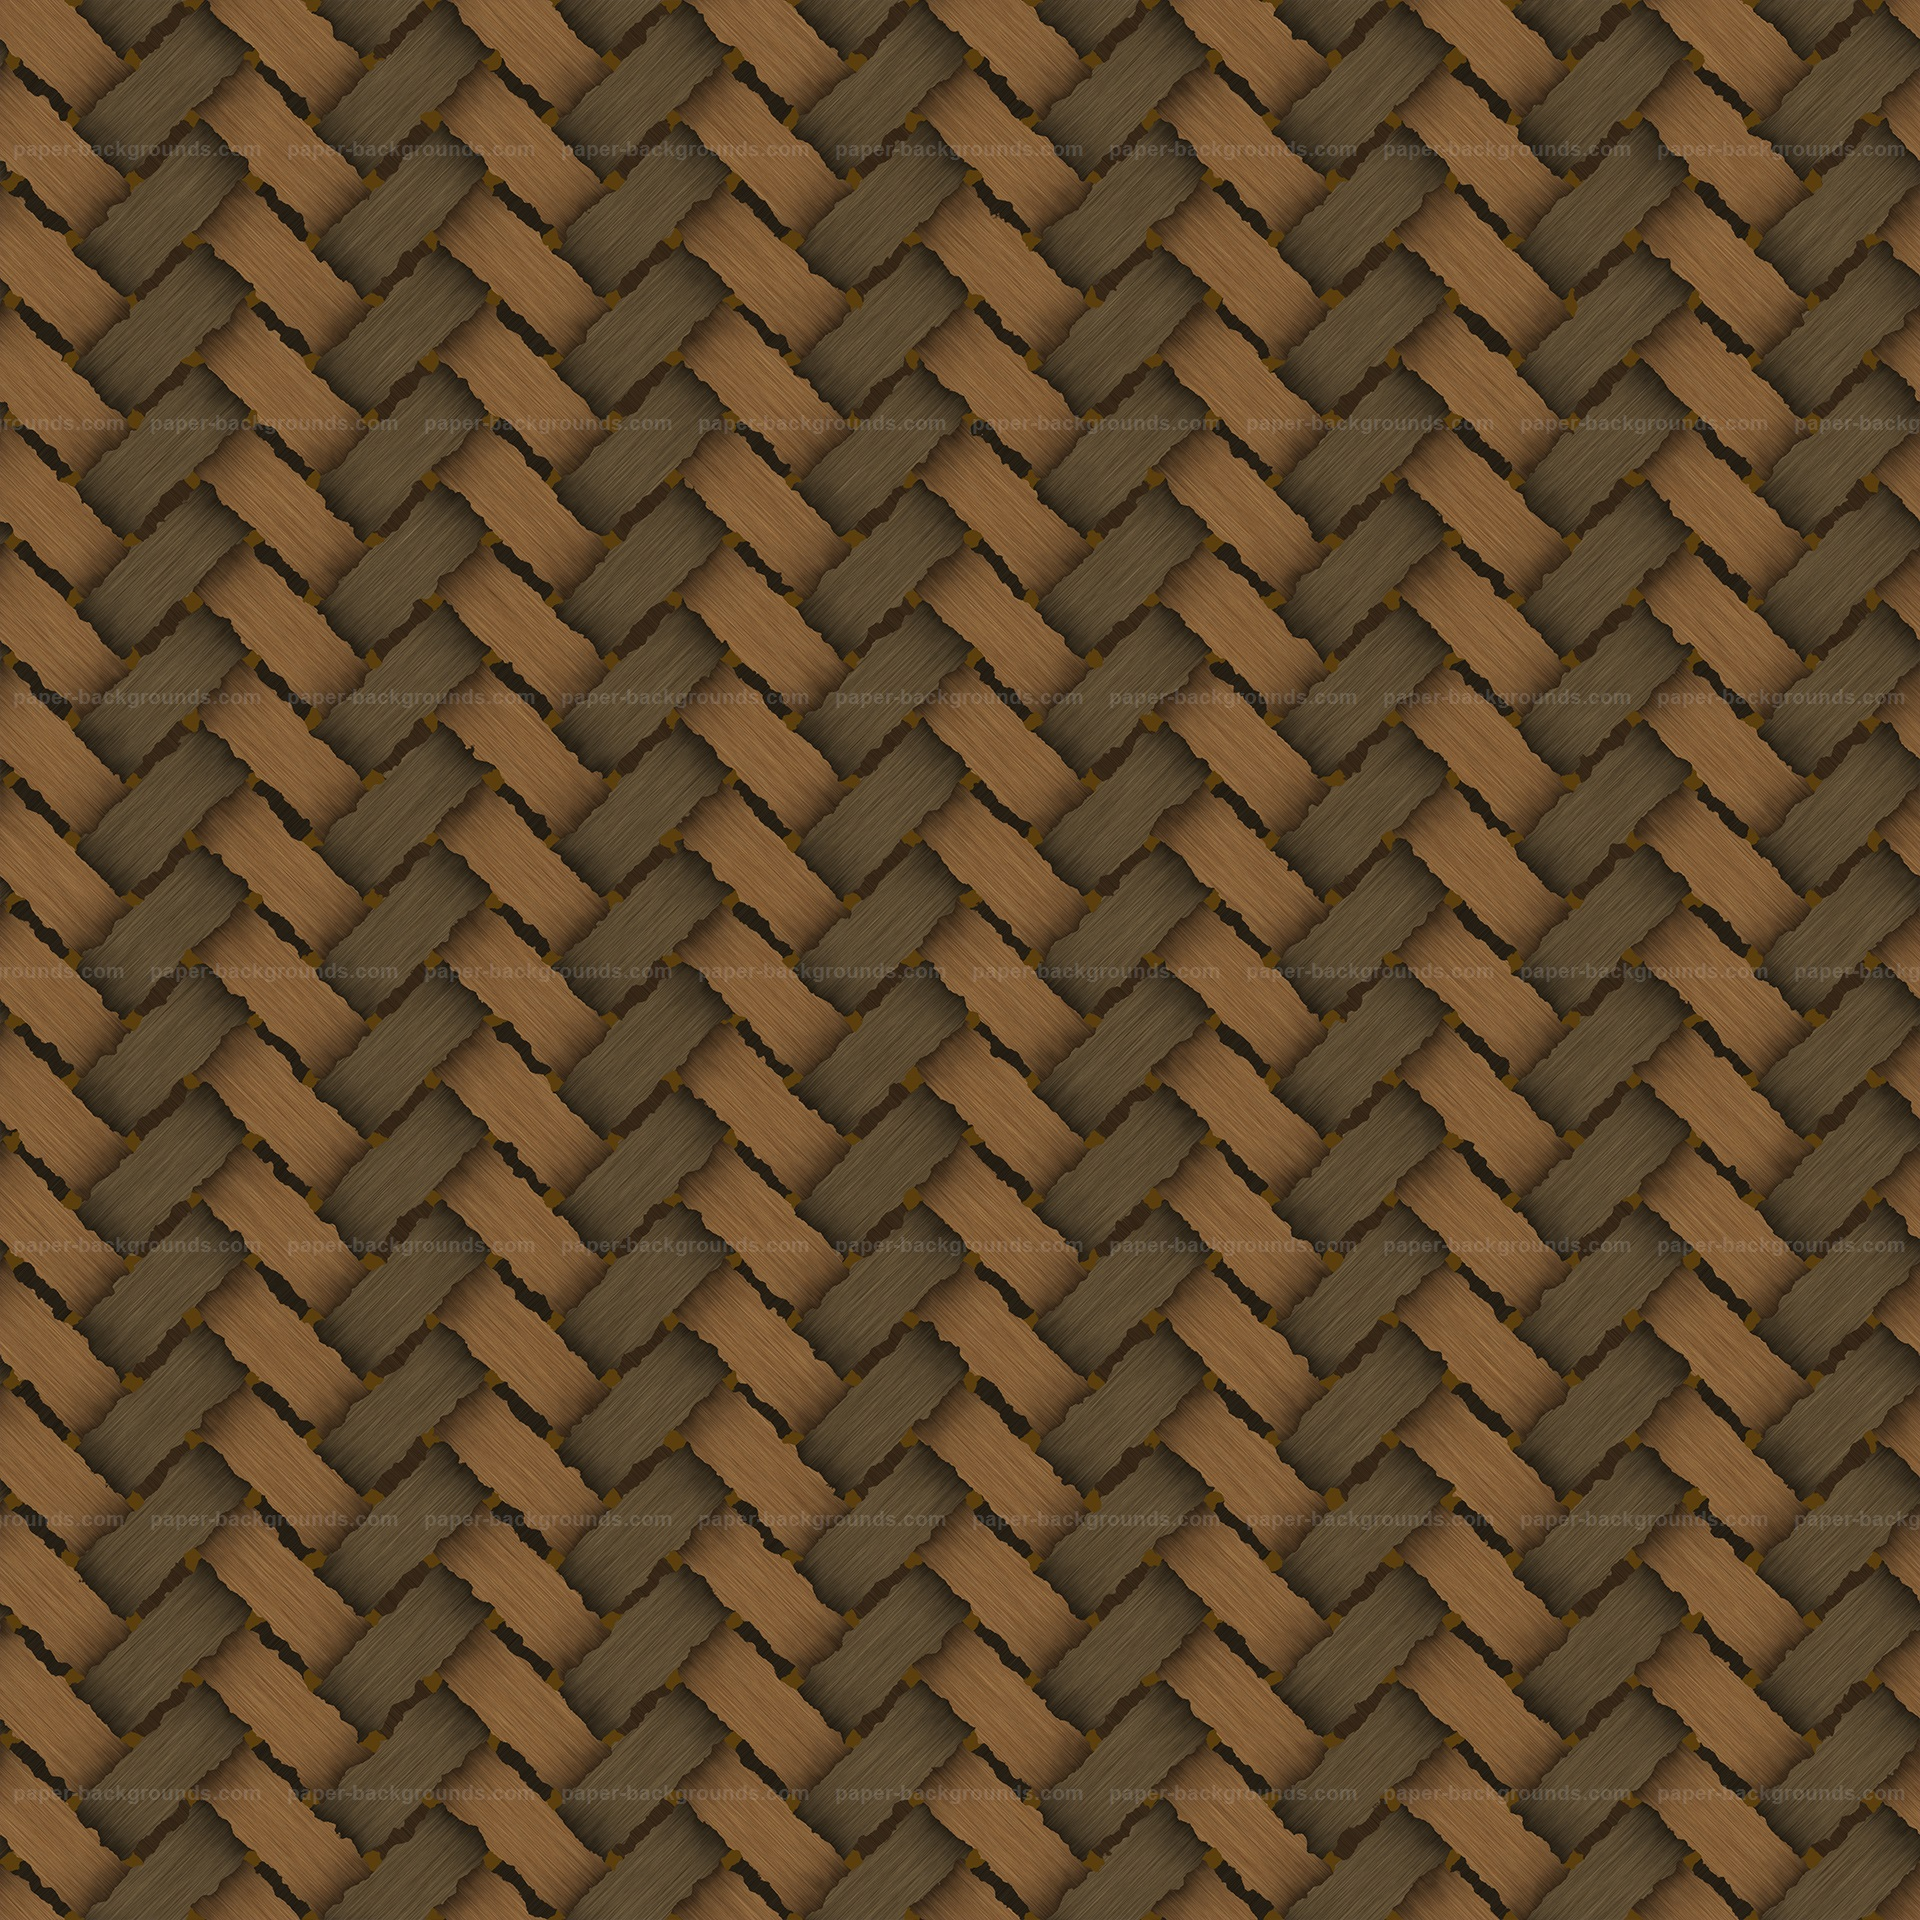 Seamless Brown Wood Twines Texture HD